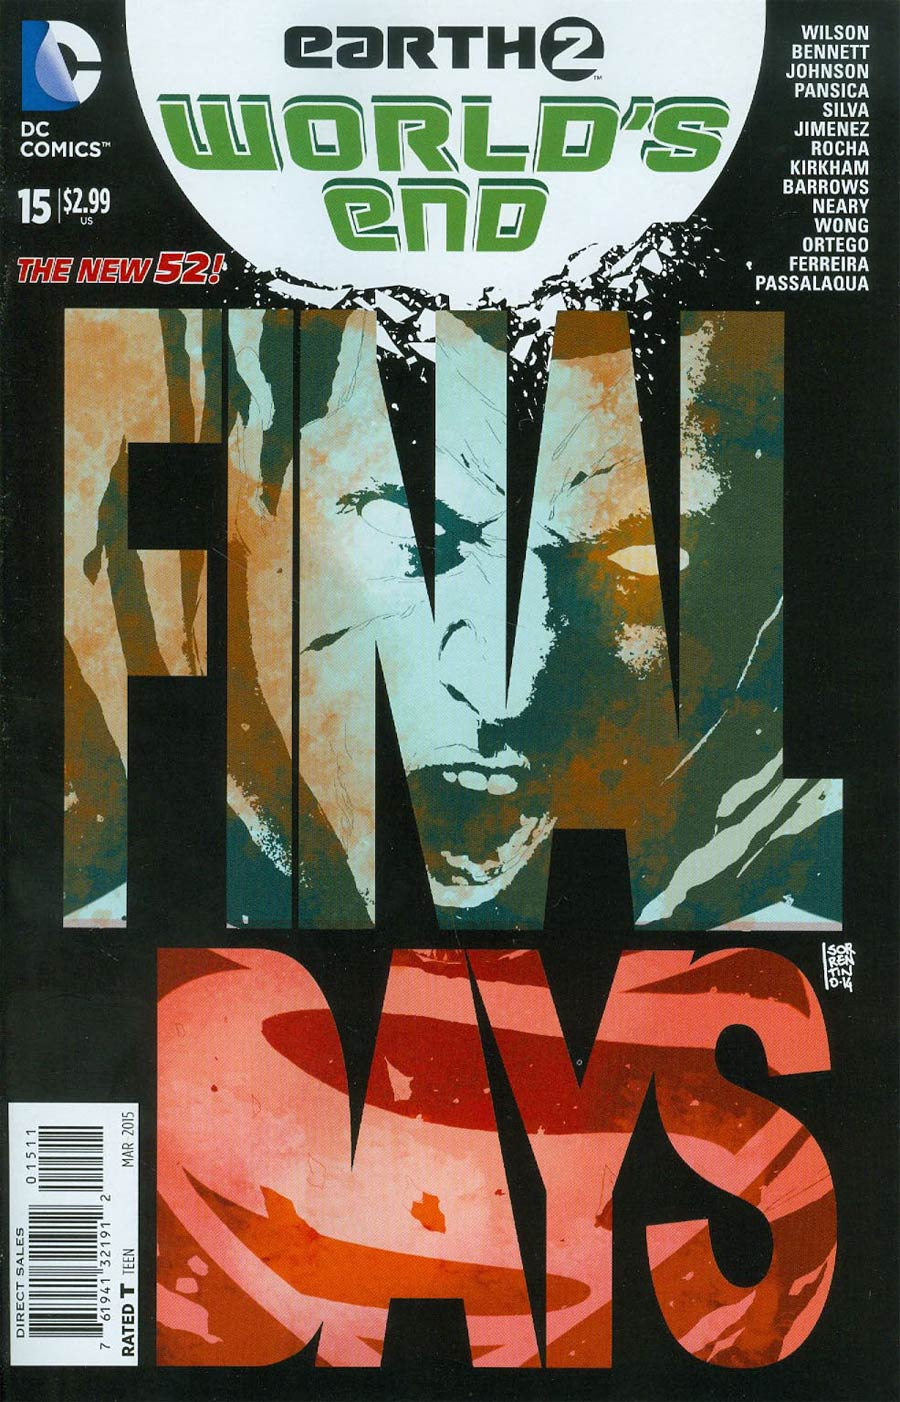 Earth 2 Worlds End #15